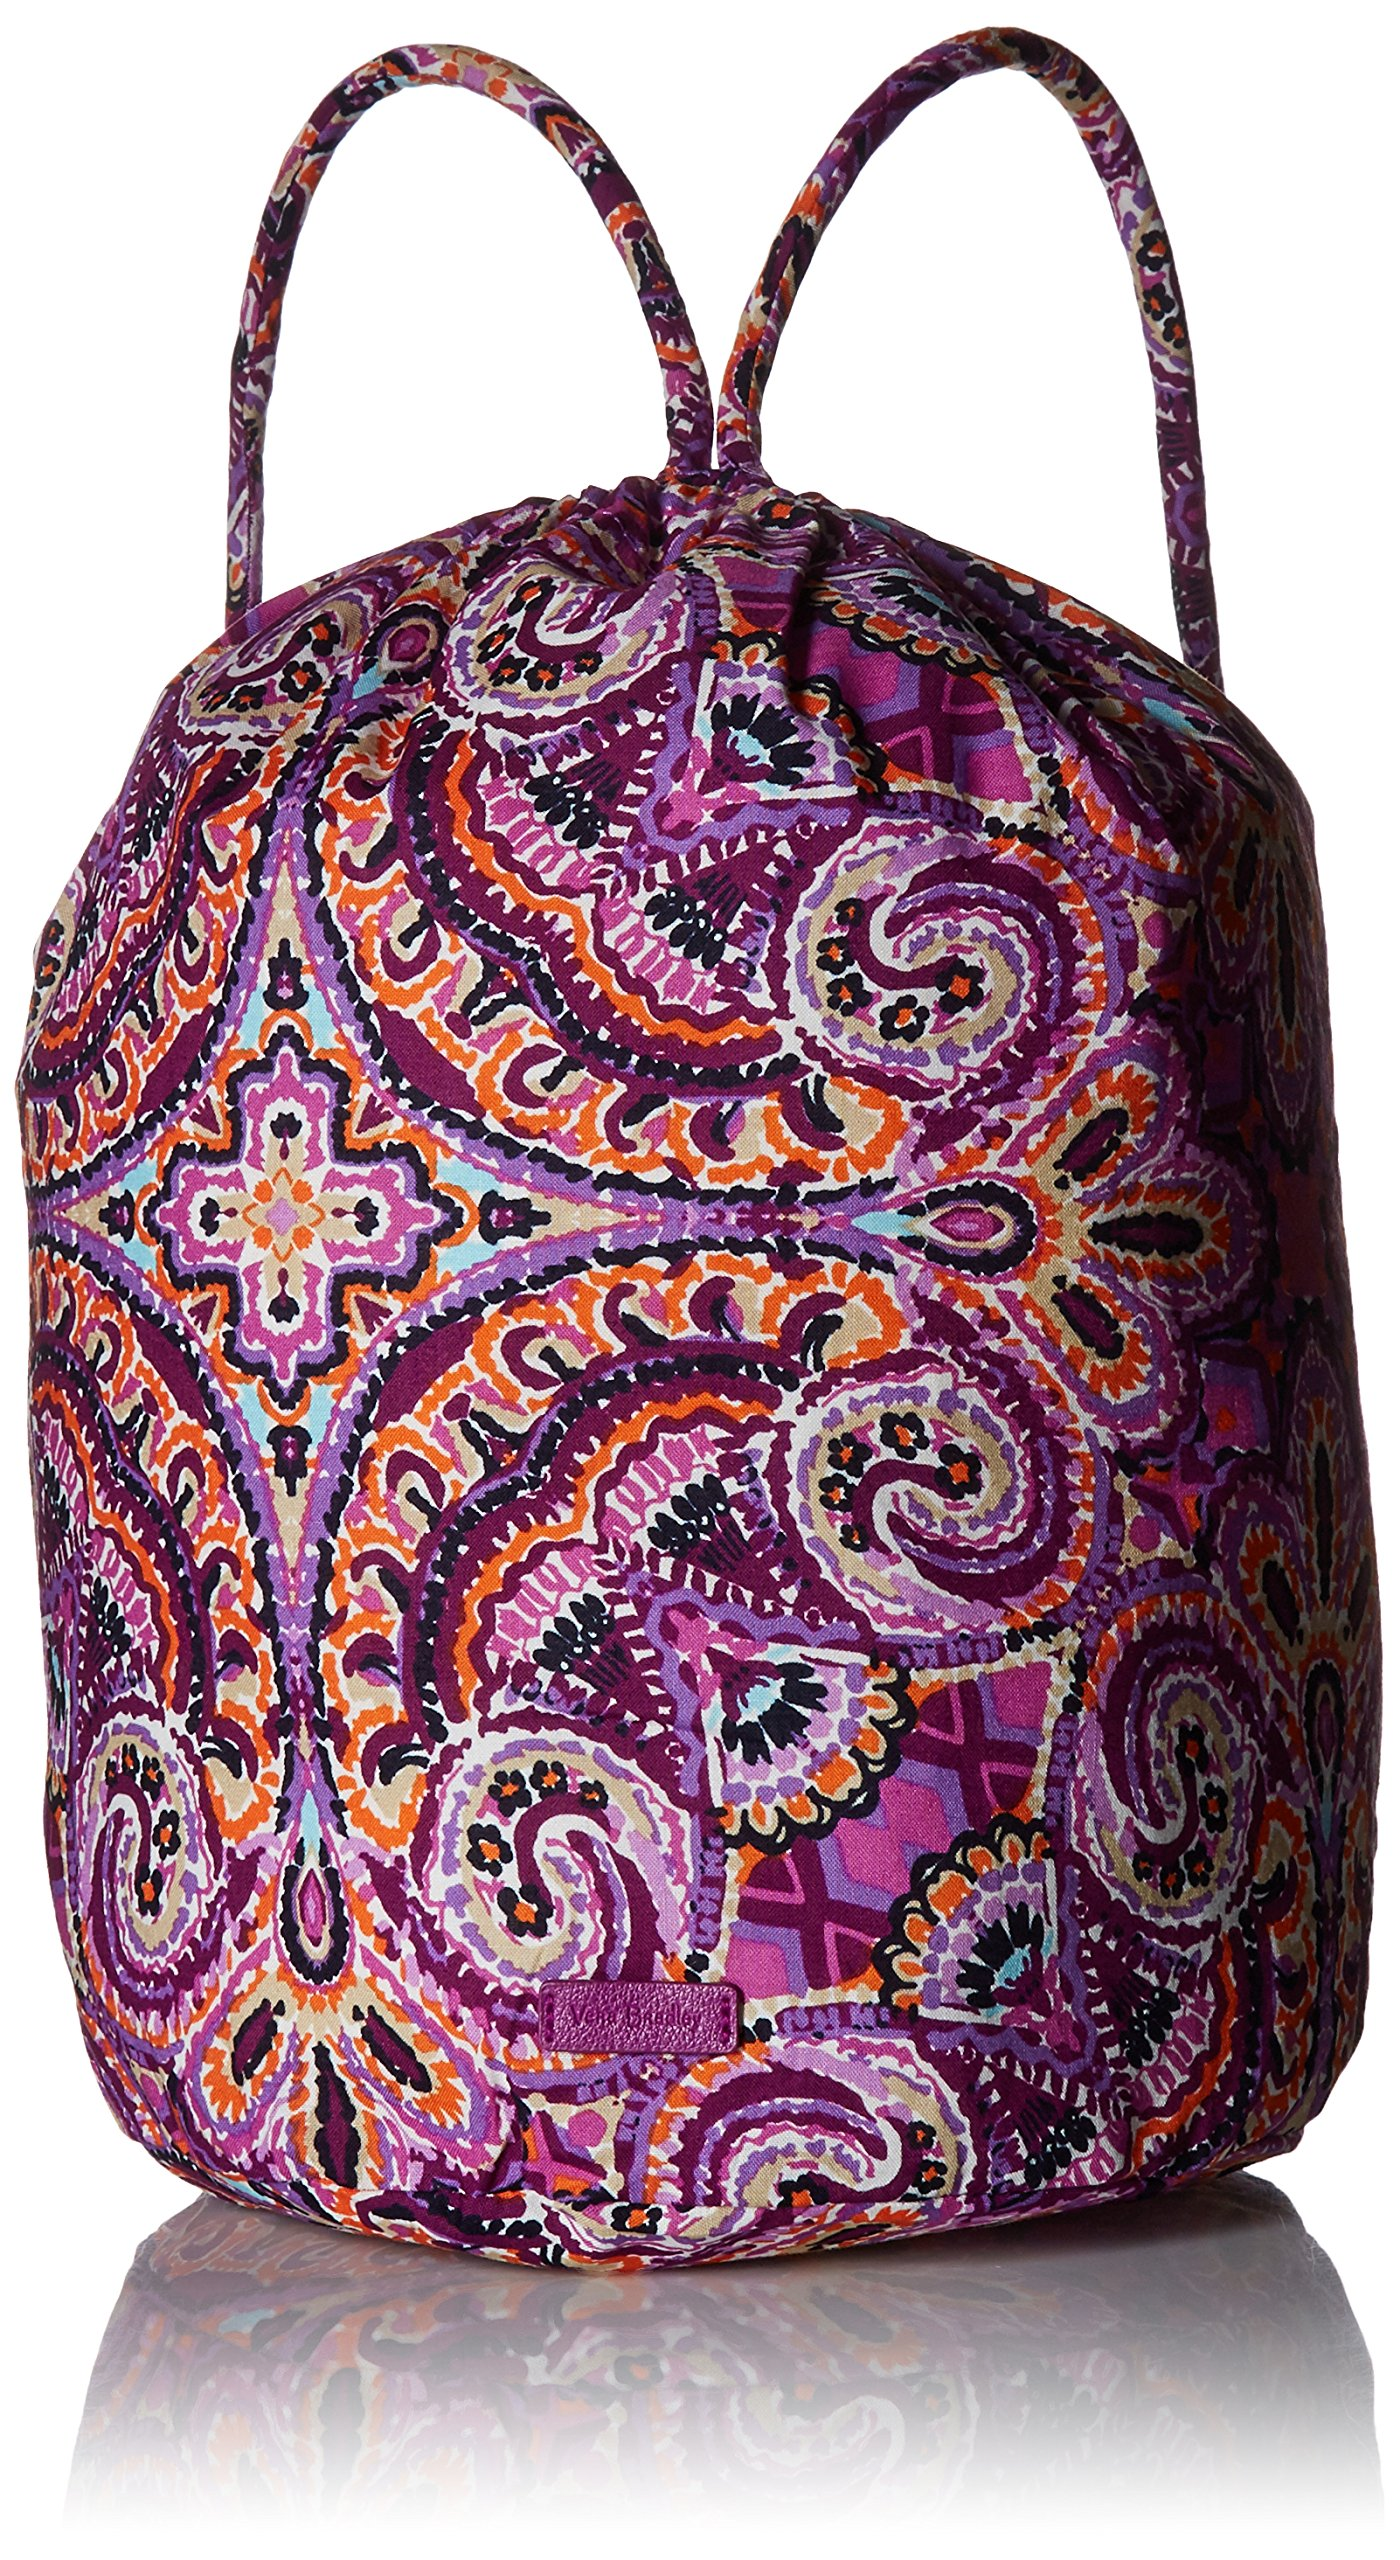 Vera Bradley Iconic Ditty Bag, Signature Cotton, Dream Tapestry